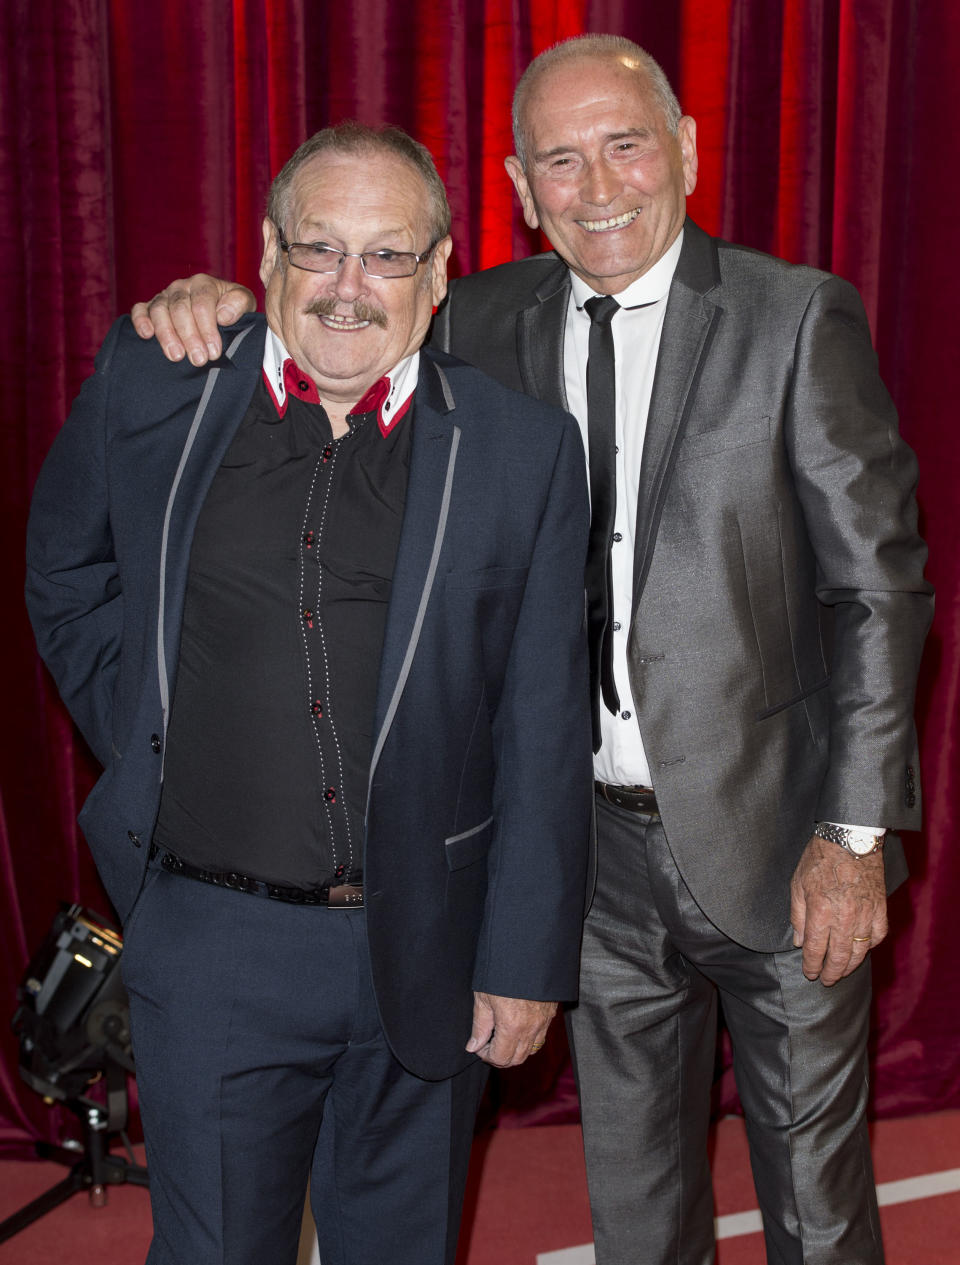 Bobby Ball and Tommy Cannon attend the British Soap Awards at Media City on May 18, 2013 in Manchester, England.  (Photo by Mark Cuthbert/UK Press via Getty Images)